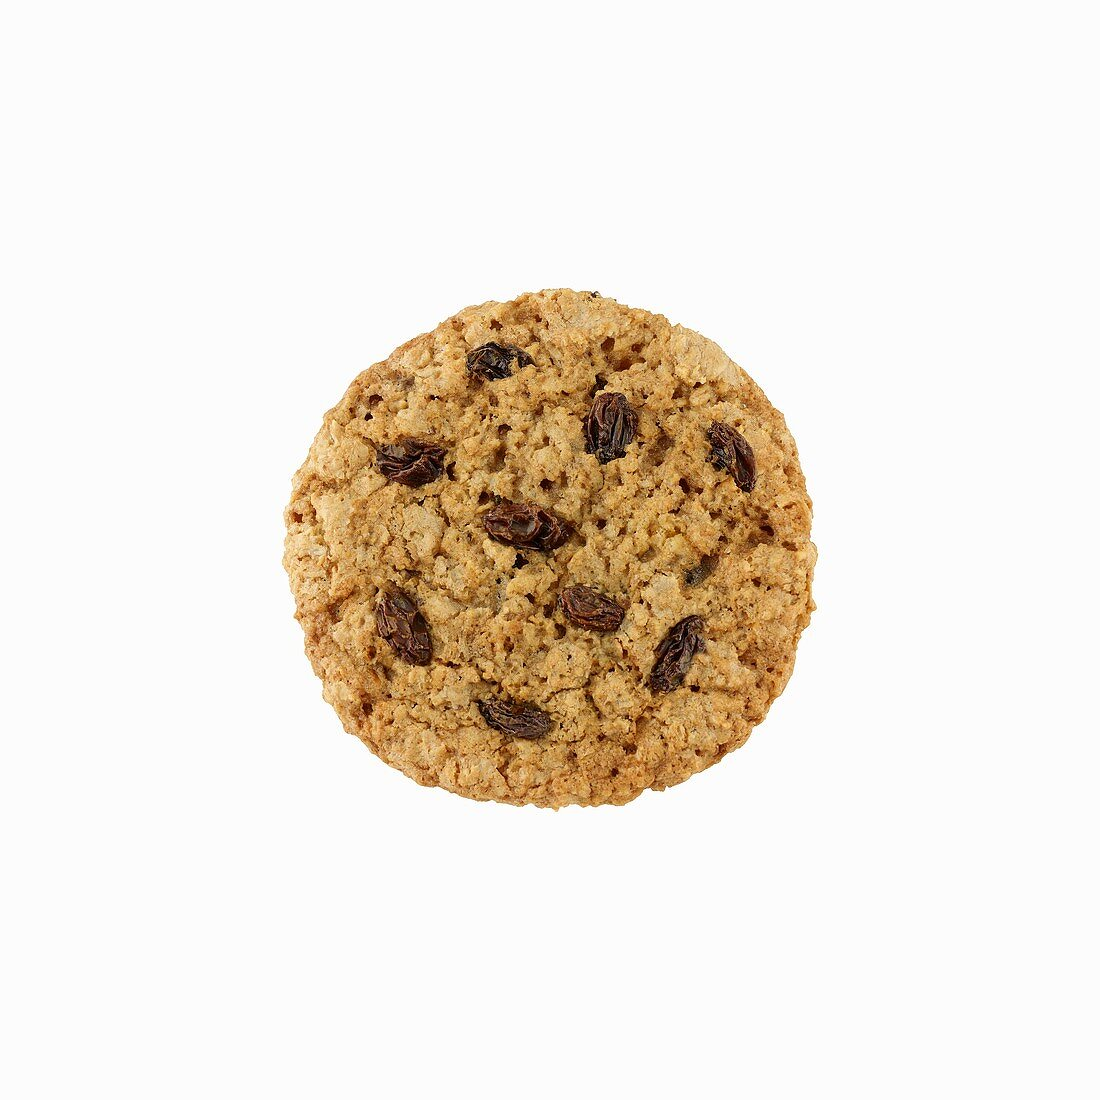 An oat biscuit with raisins